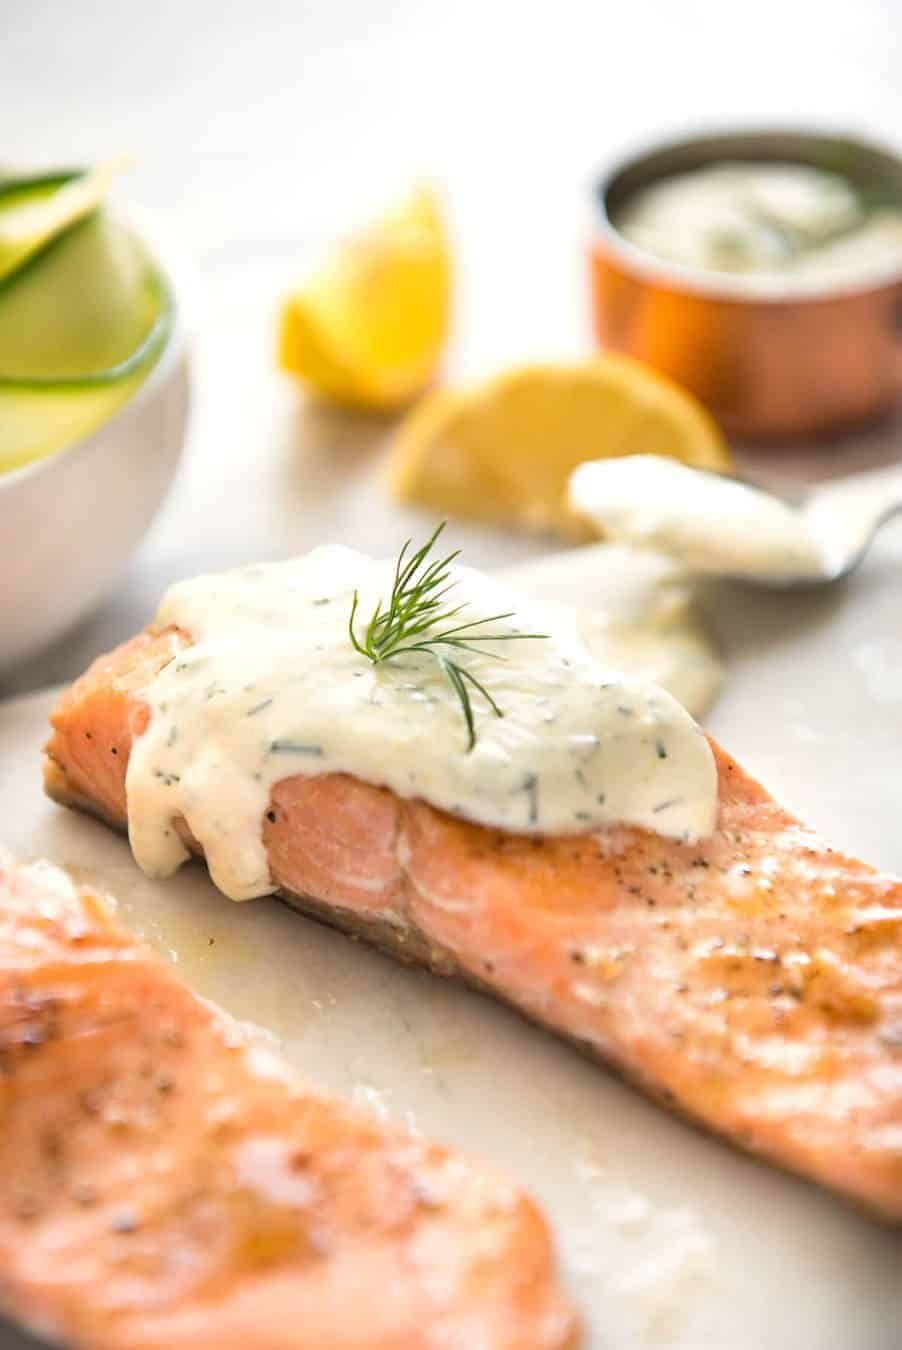 Creamy Dill Sauce For Salmon Or Trout Recipe Creamy Dill Sauce Dill Sauce For Salmon Dill Sauce